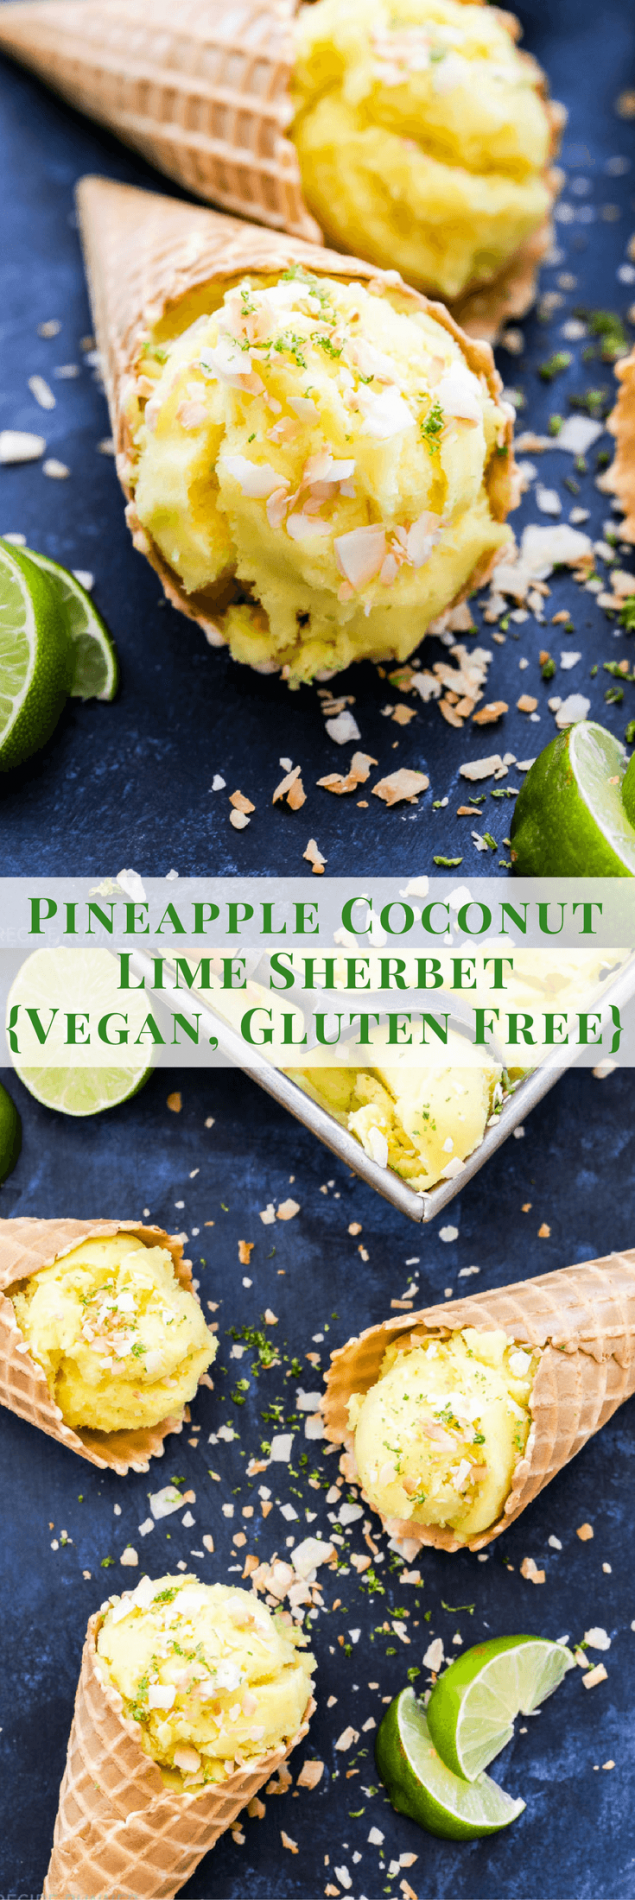 What better way to stay cool this summer than with a scoop of this refreshing Pineapple Coconut Lime Sherbet! Easy to make, dairy free and so delicious!